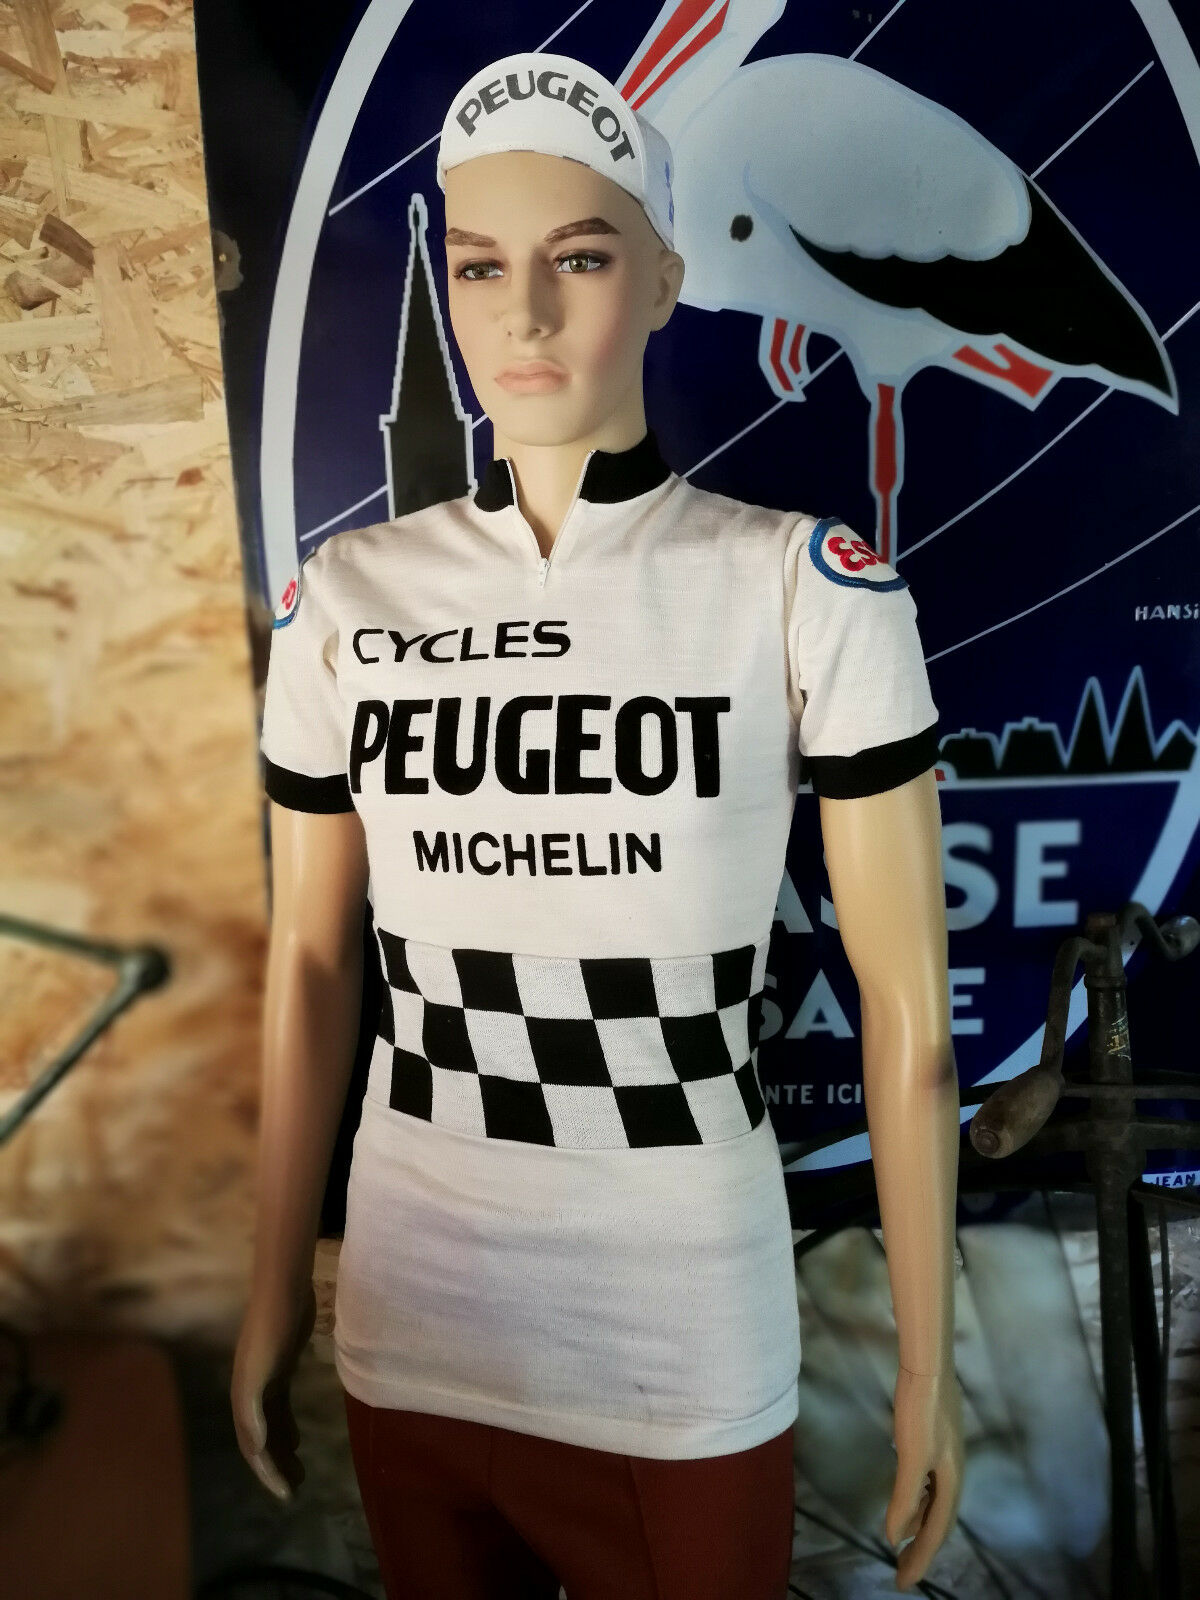 N.O.S Maillot hiver PEUGEOT CYCLES velo old bike bici epoca maillot